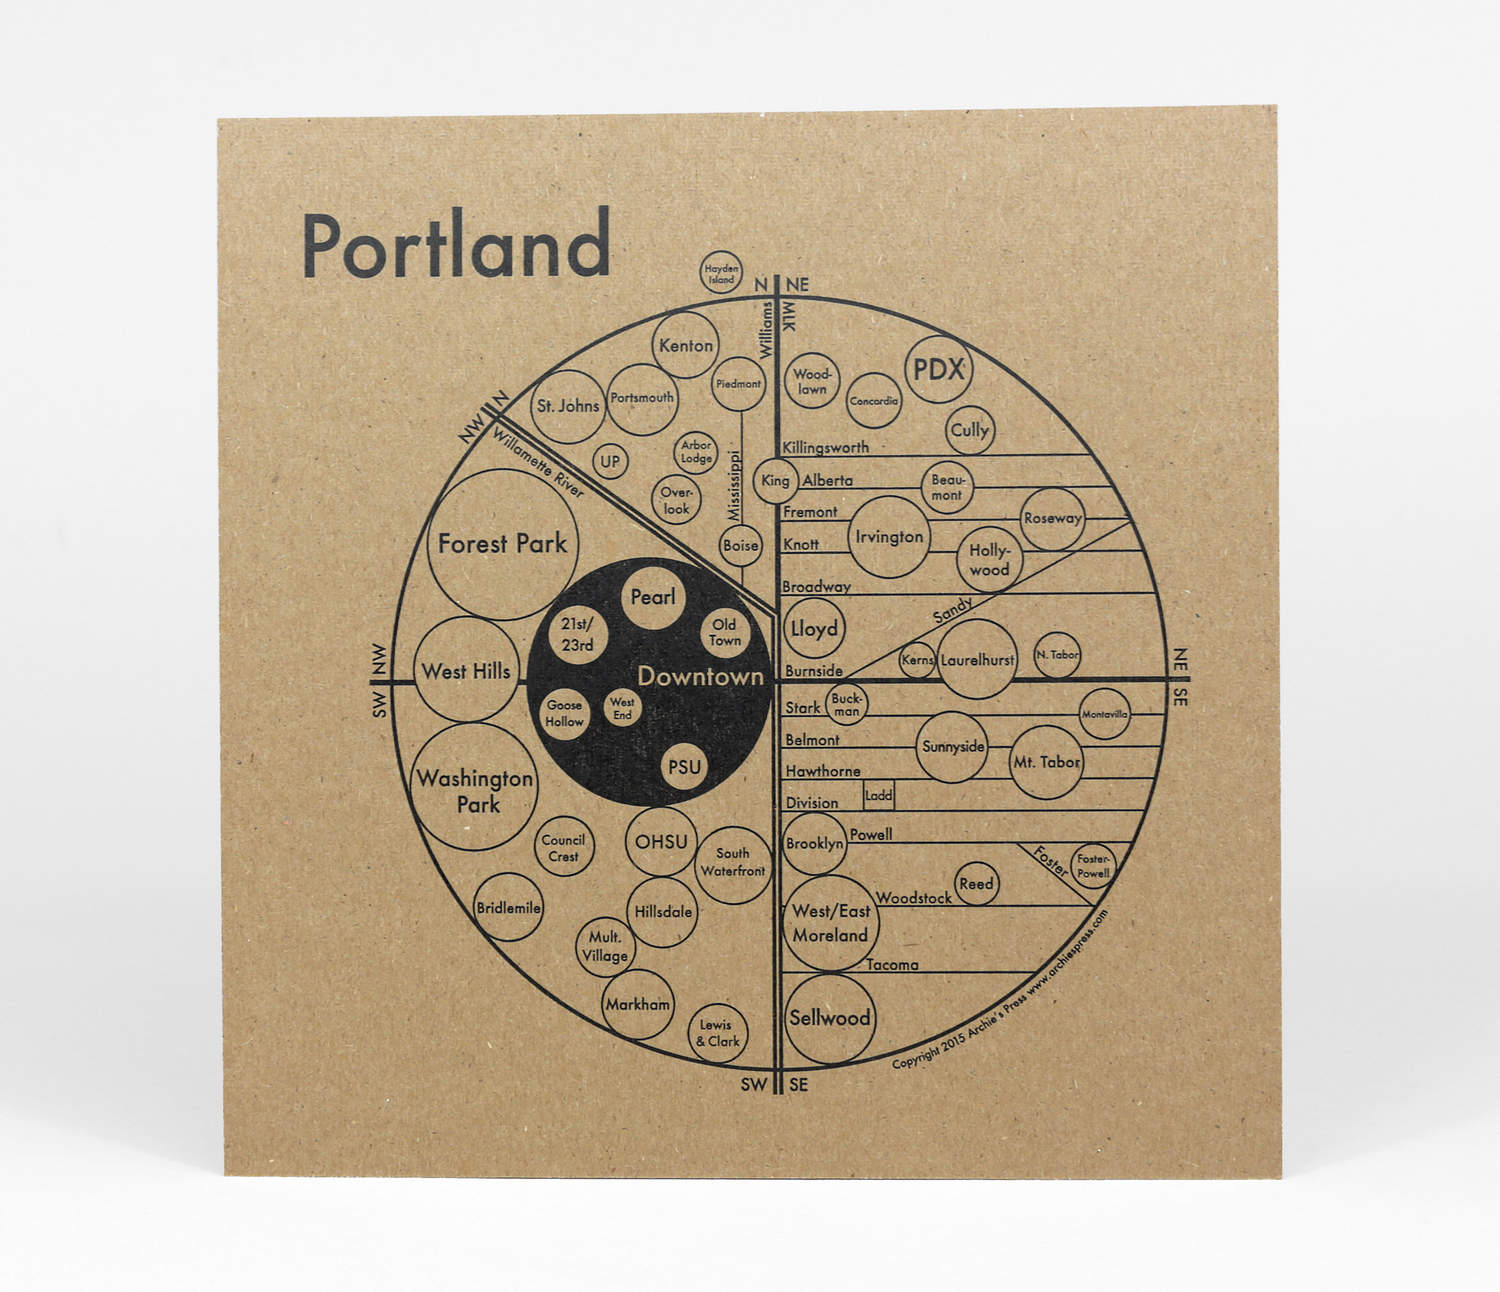 Circle Map of Portland on map of marylhurst university, map of foxborough, map of brookings, map of lithia park, map of spring city, map of seattle, map of beaverton, map of united states, map of michigan, map of northborough, map of winsted, map of crabtree, map of west salem, map of fort kent, map of lake oswego, map of west school, map of maine, map of north chelmsford, map of surrounding, map oregon,